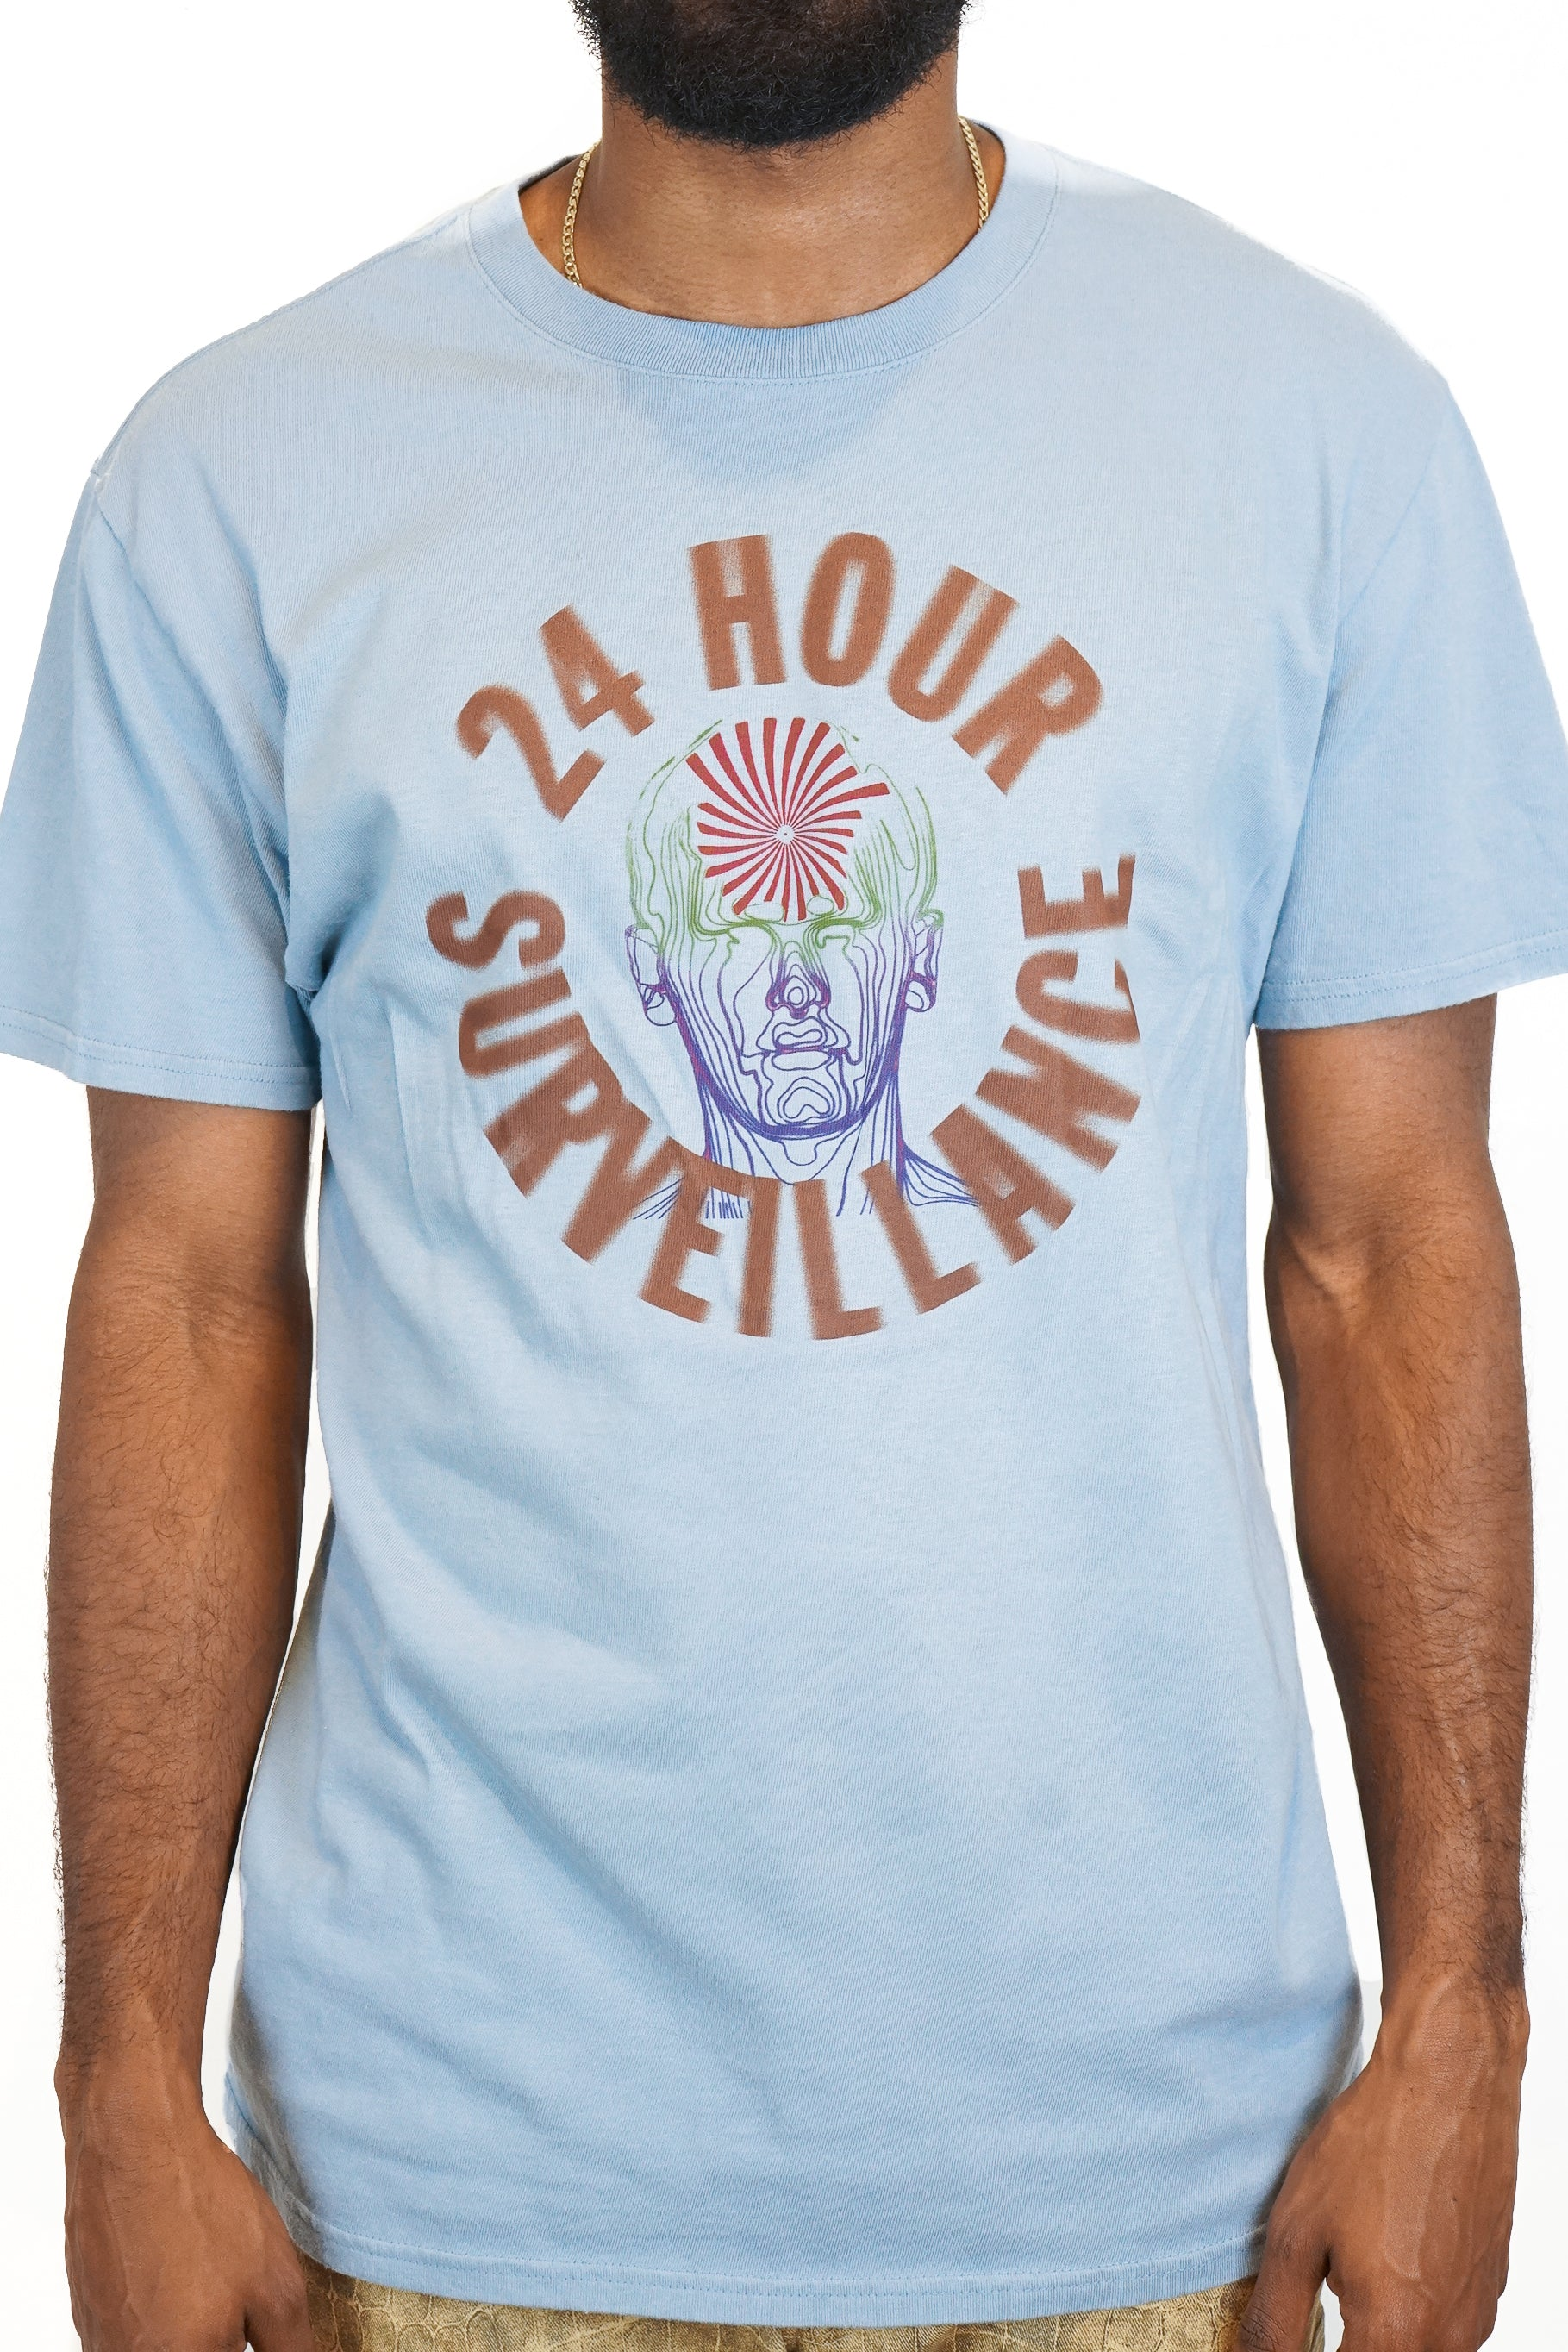 24 Hour T-Shirt in Soft Blue